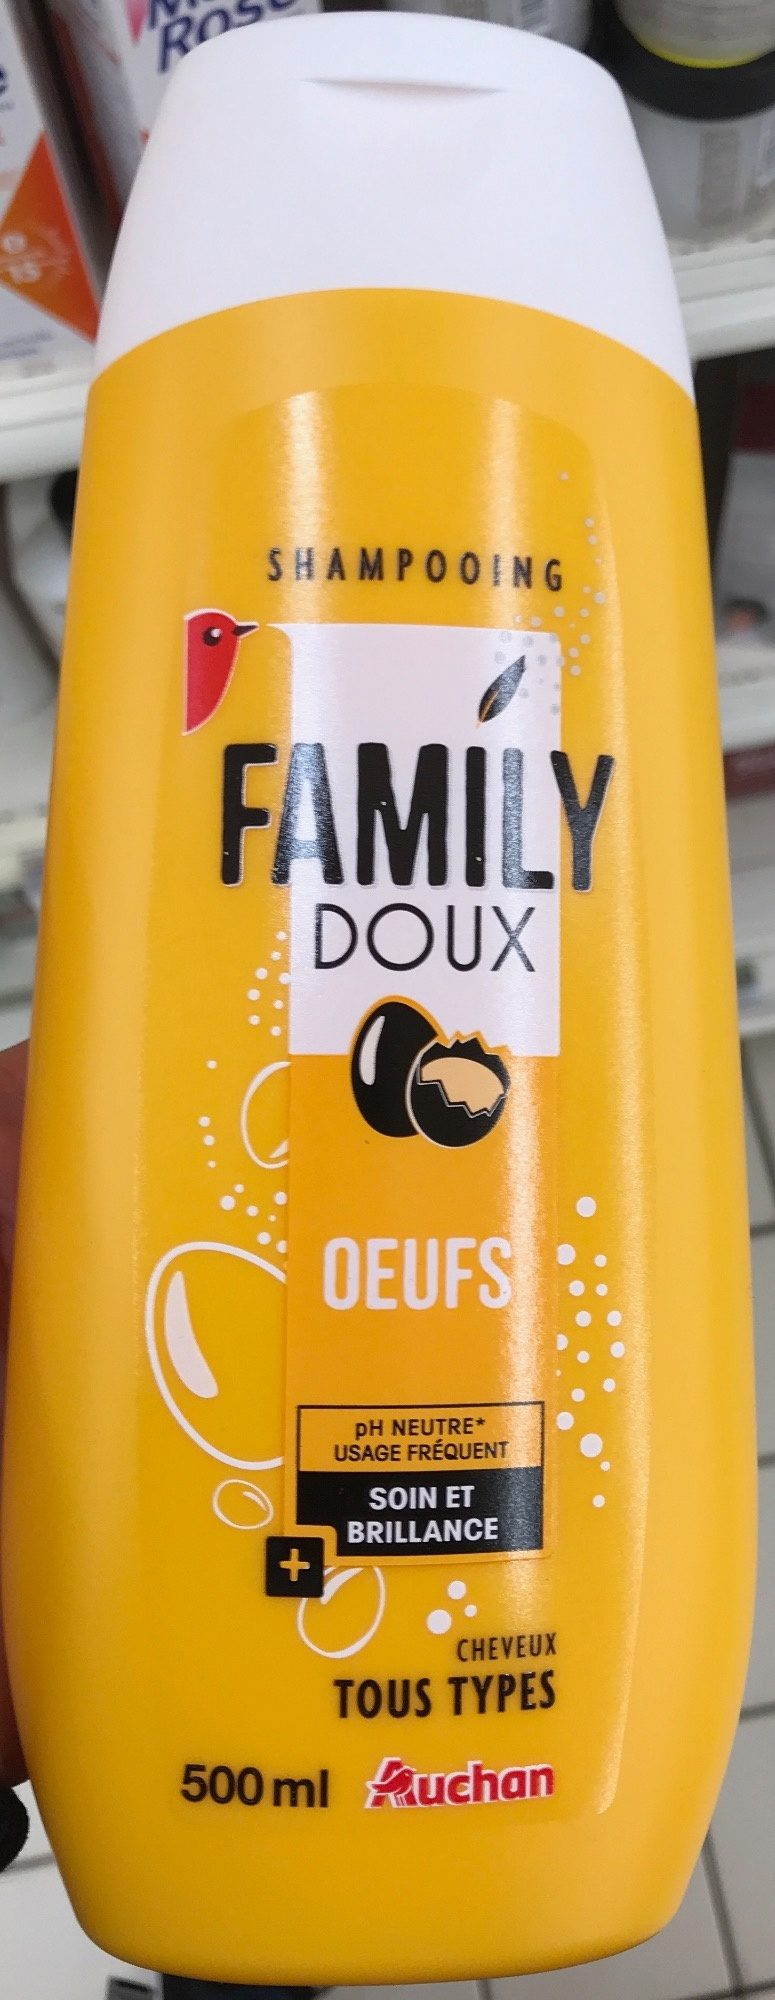 Shampooing Family Doux Oeufs - Product - fr